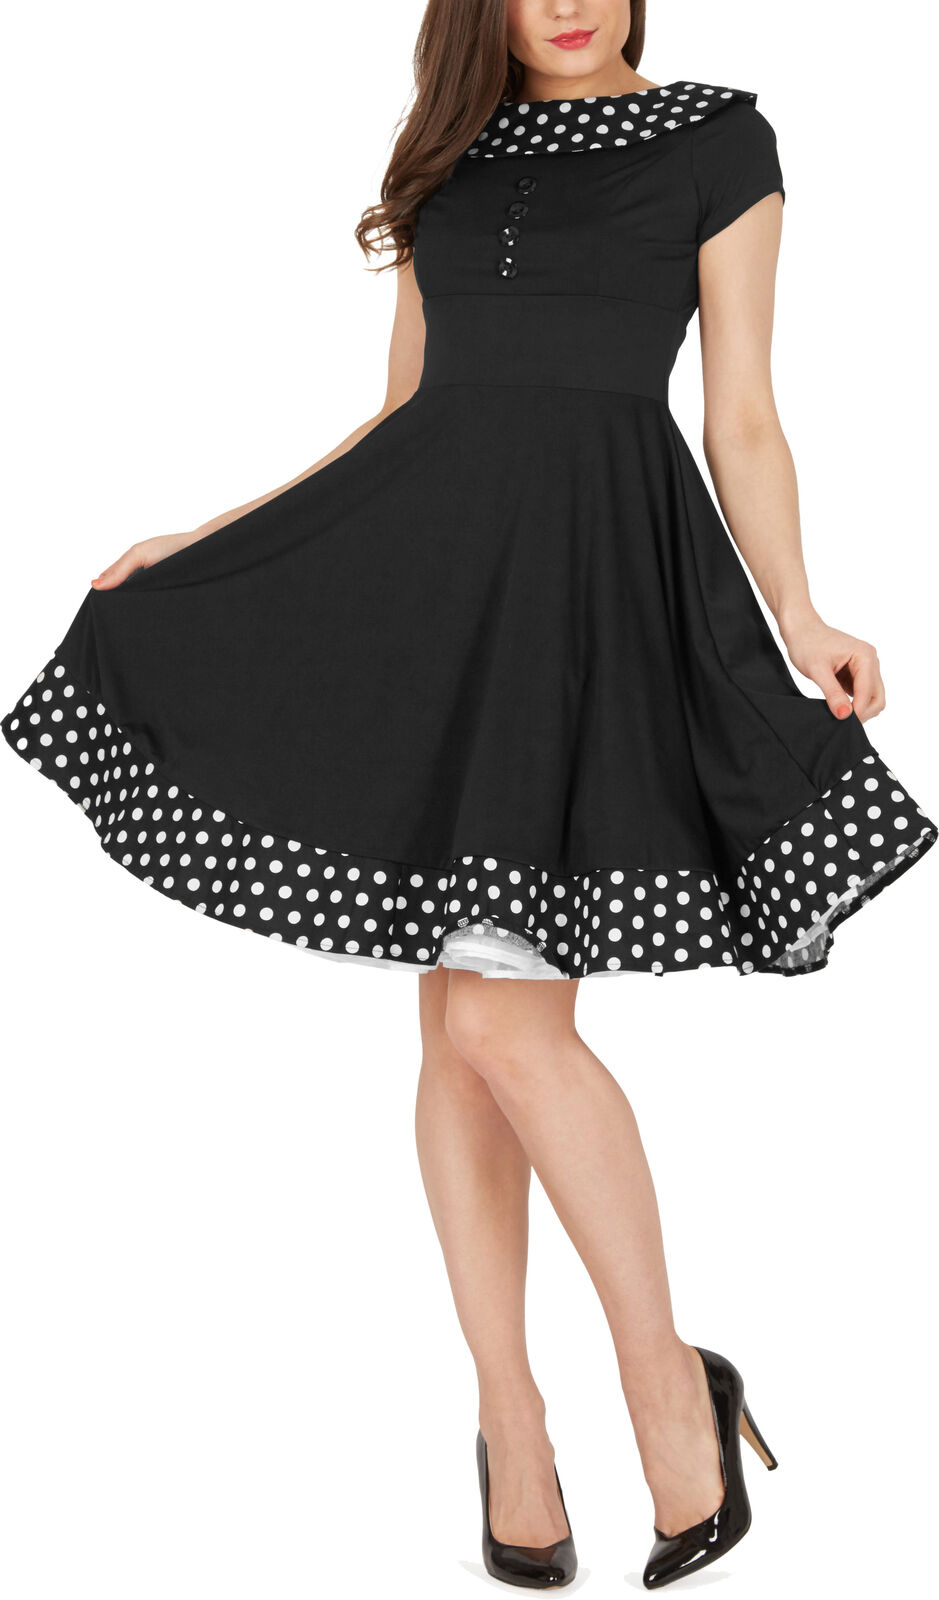 RHIANNA  Vintage a pois pin up 1950's Rockabilly Swing Prom Dress